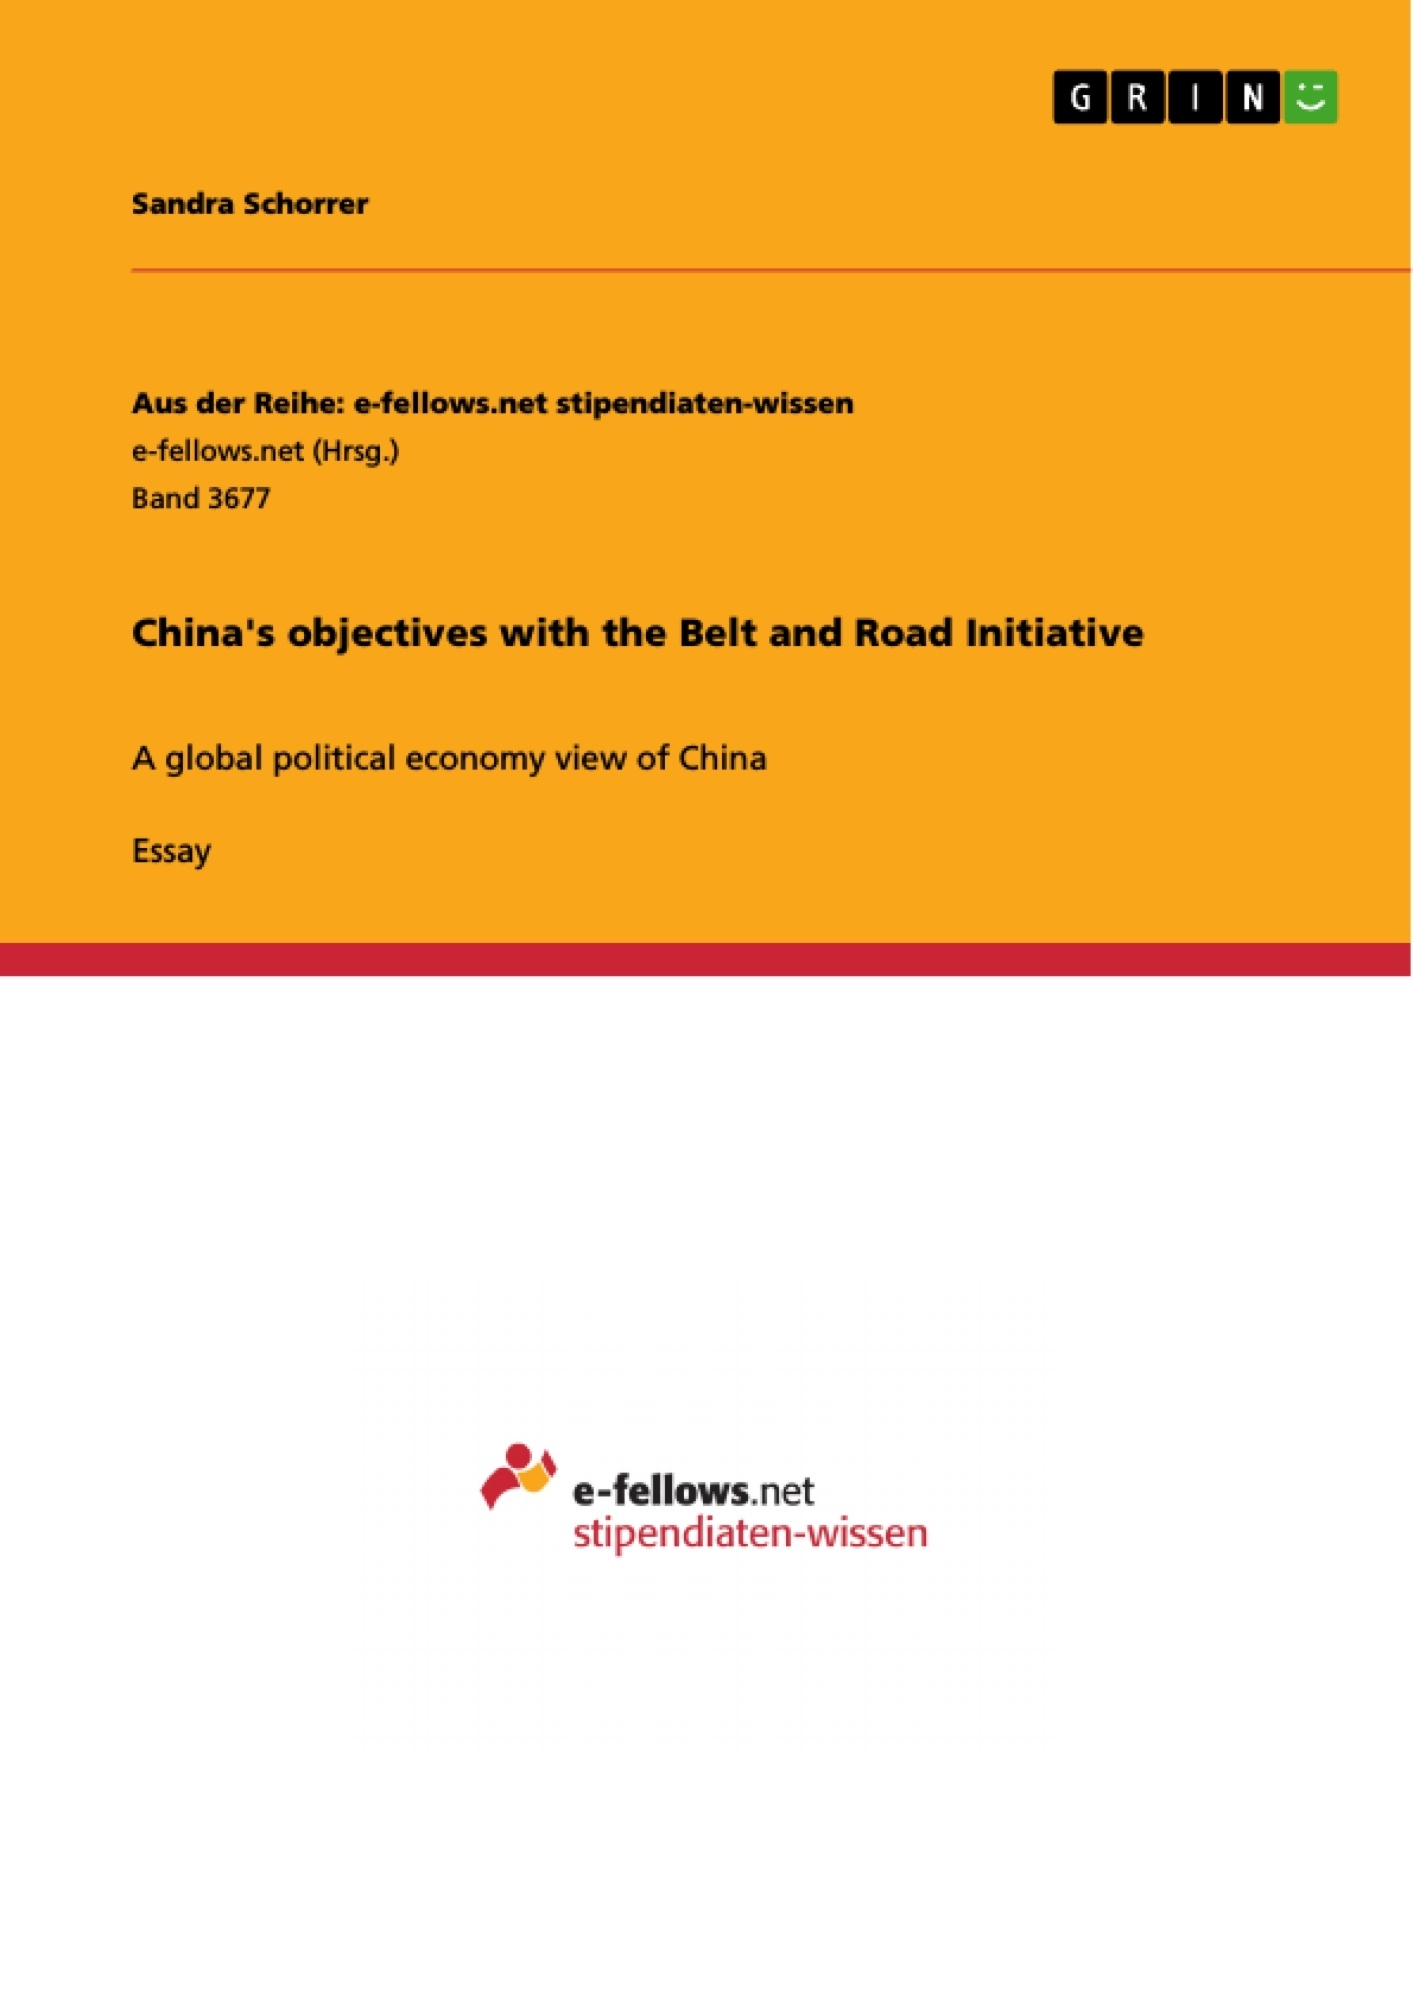 Title: China's objectives with the Belt and Road Initiative